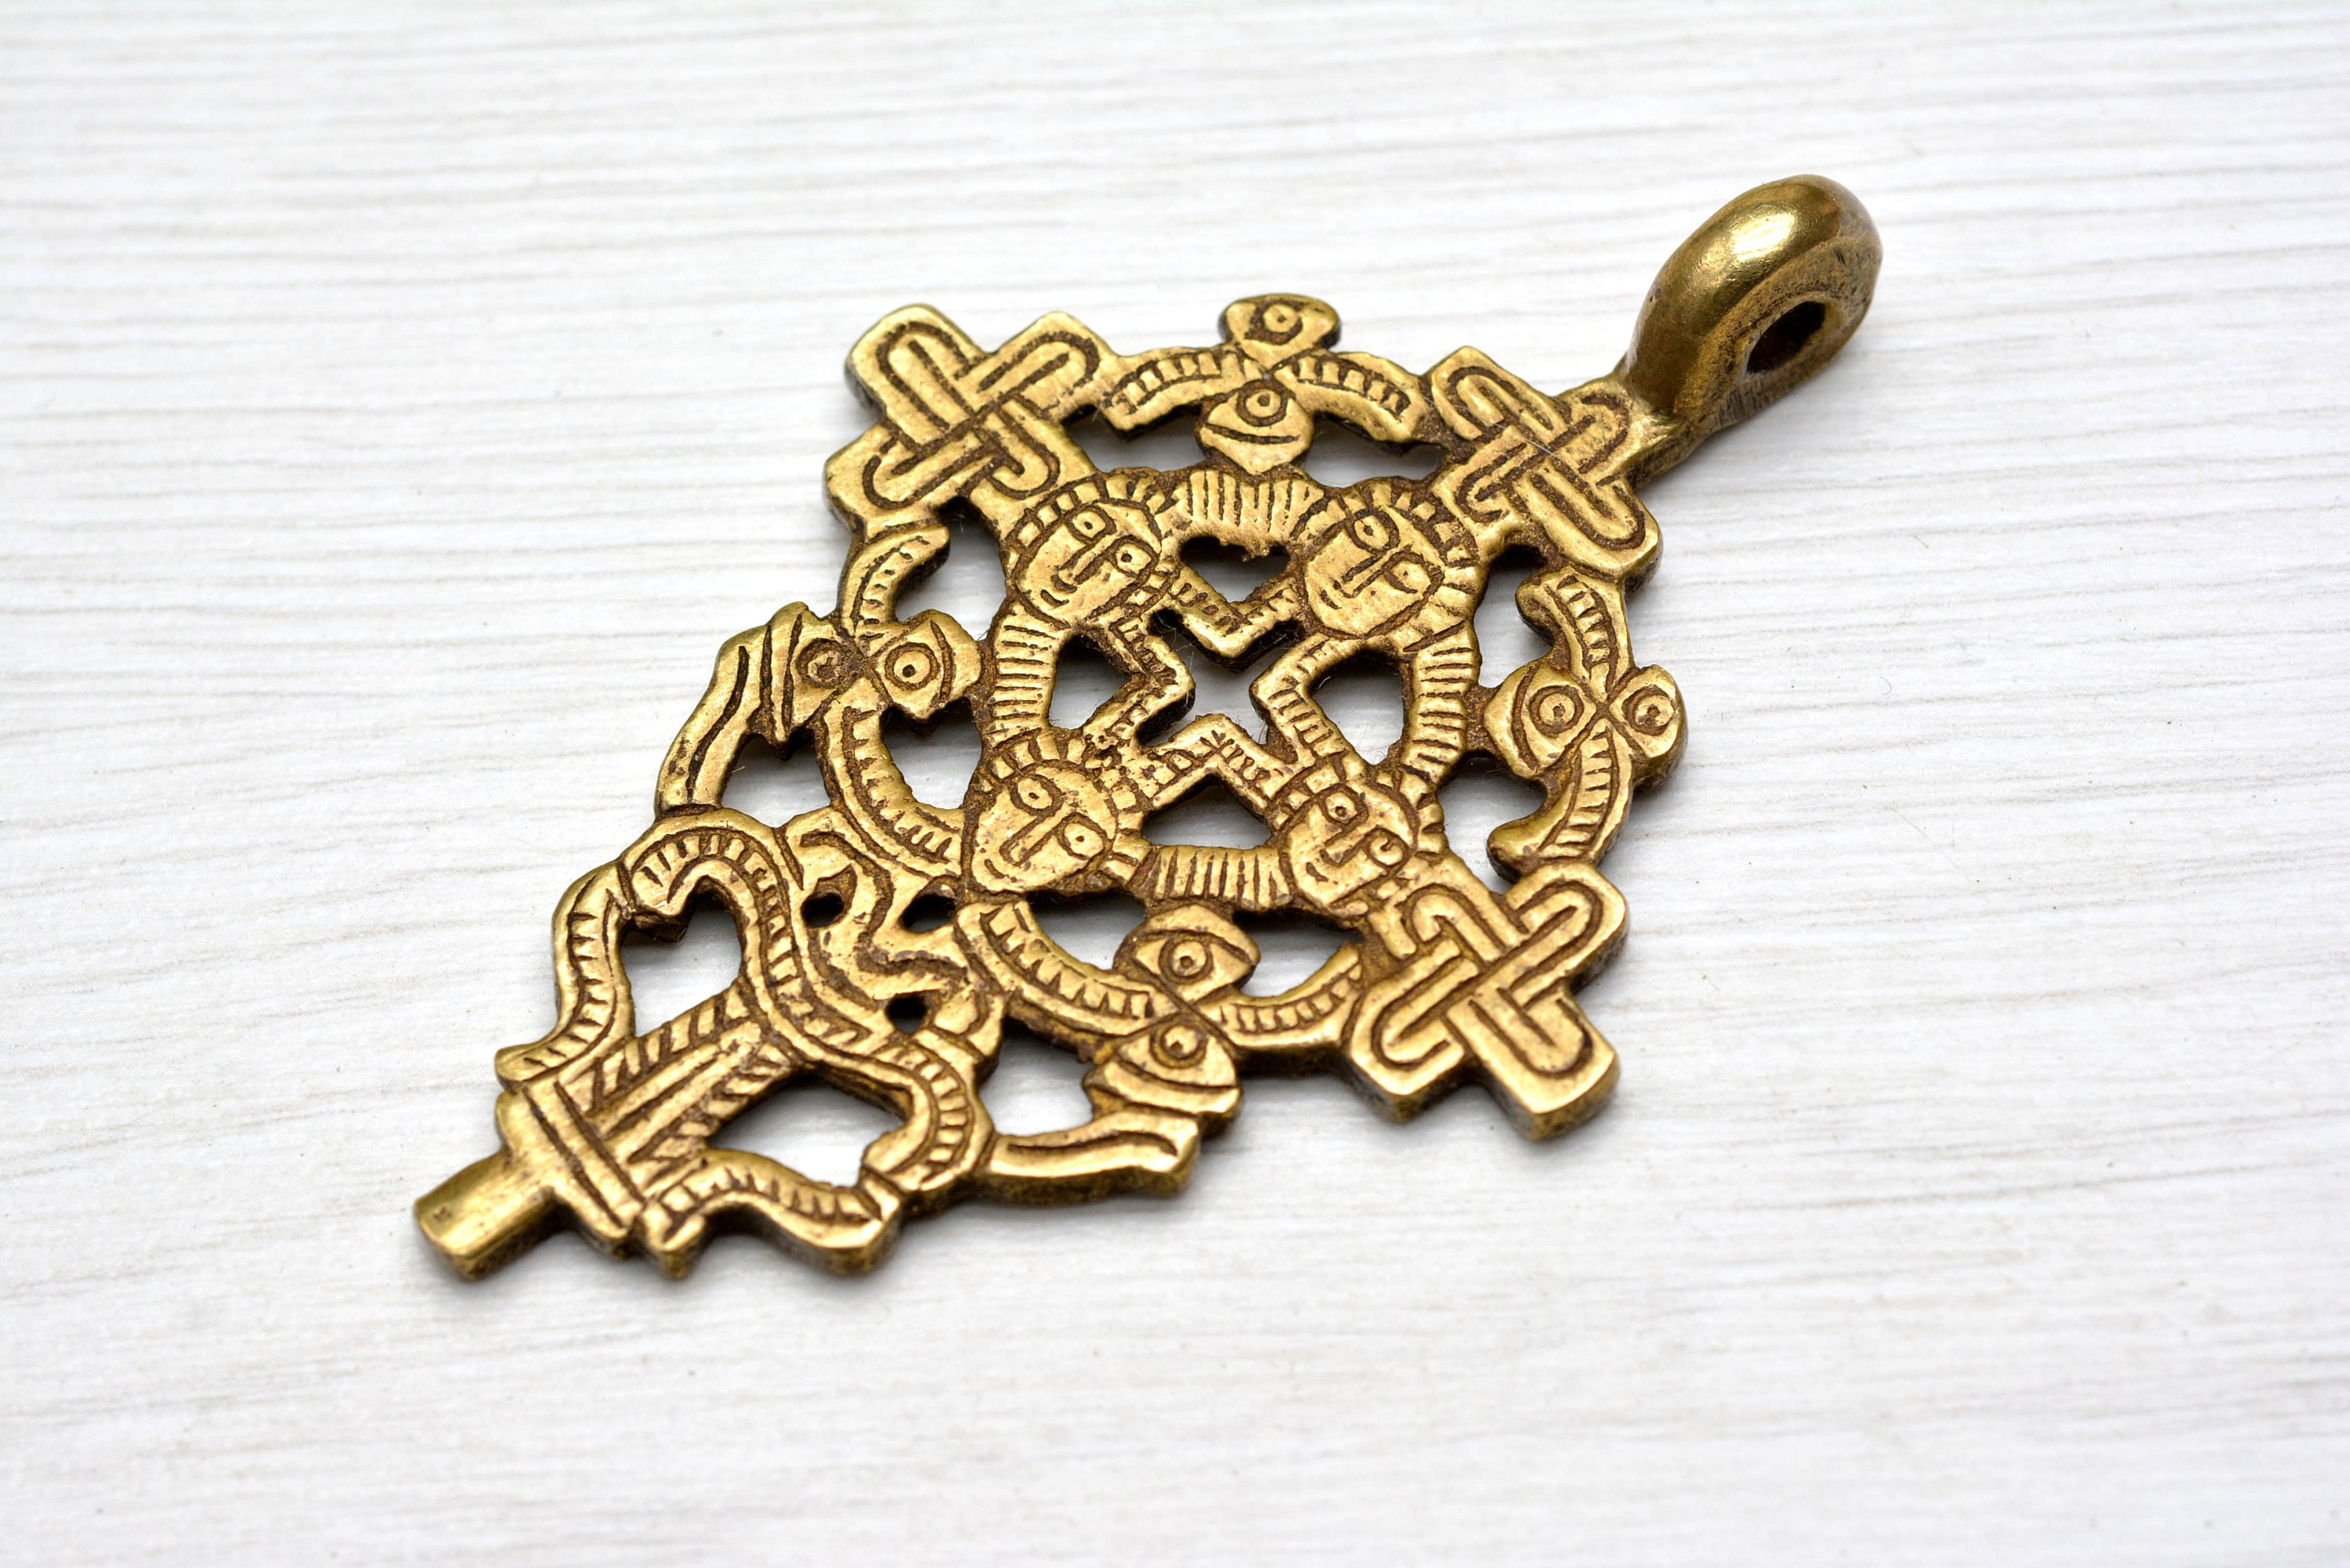 pendant cross necklaces catholic crucifix crosses crucifixes jerusalem and company pendants the